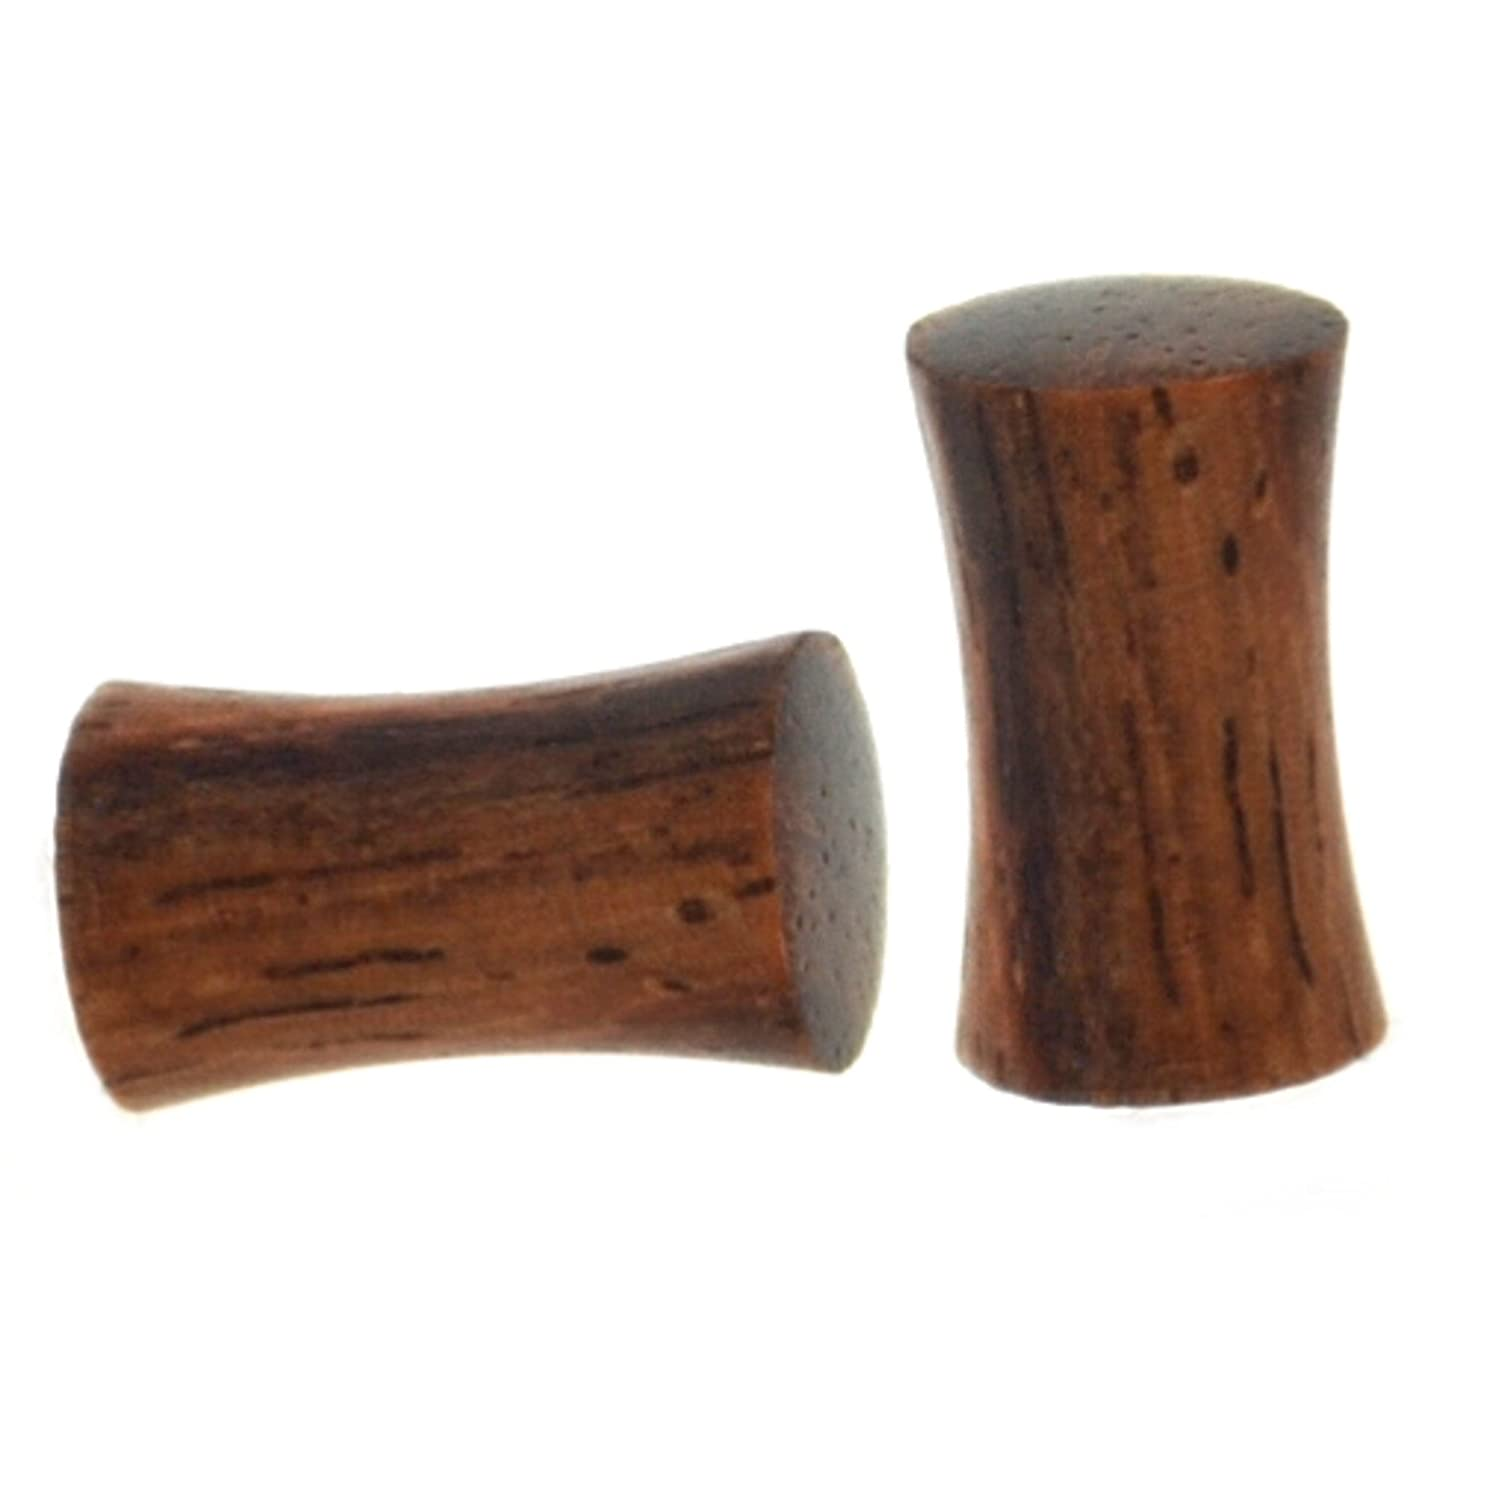 Pair (2) Solid Sono Wood Ear Plugs Organic Wooden Saddle Gauges - 4G 5MM